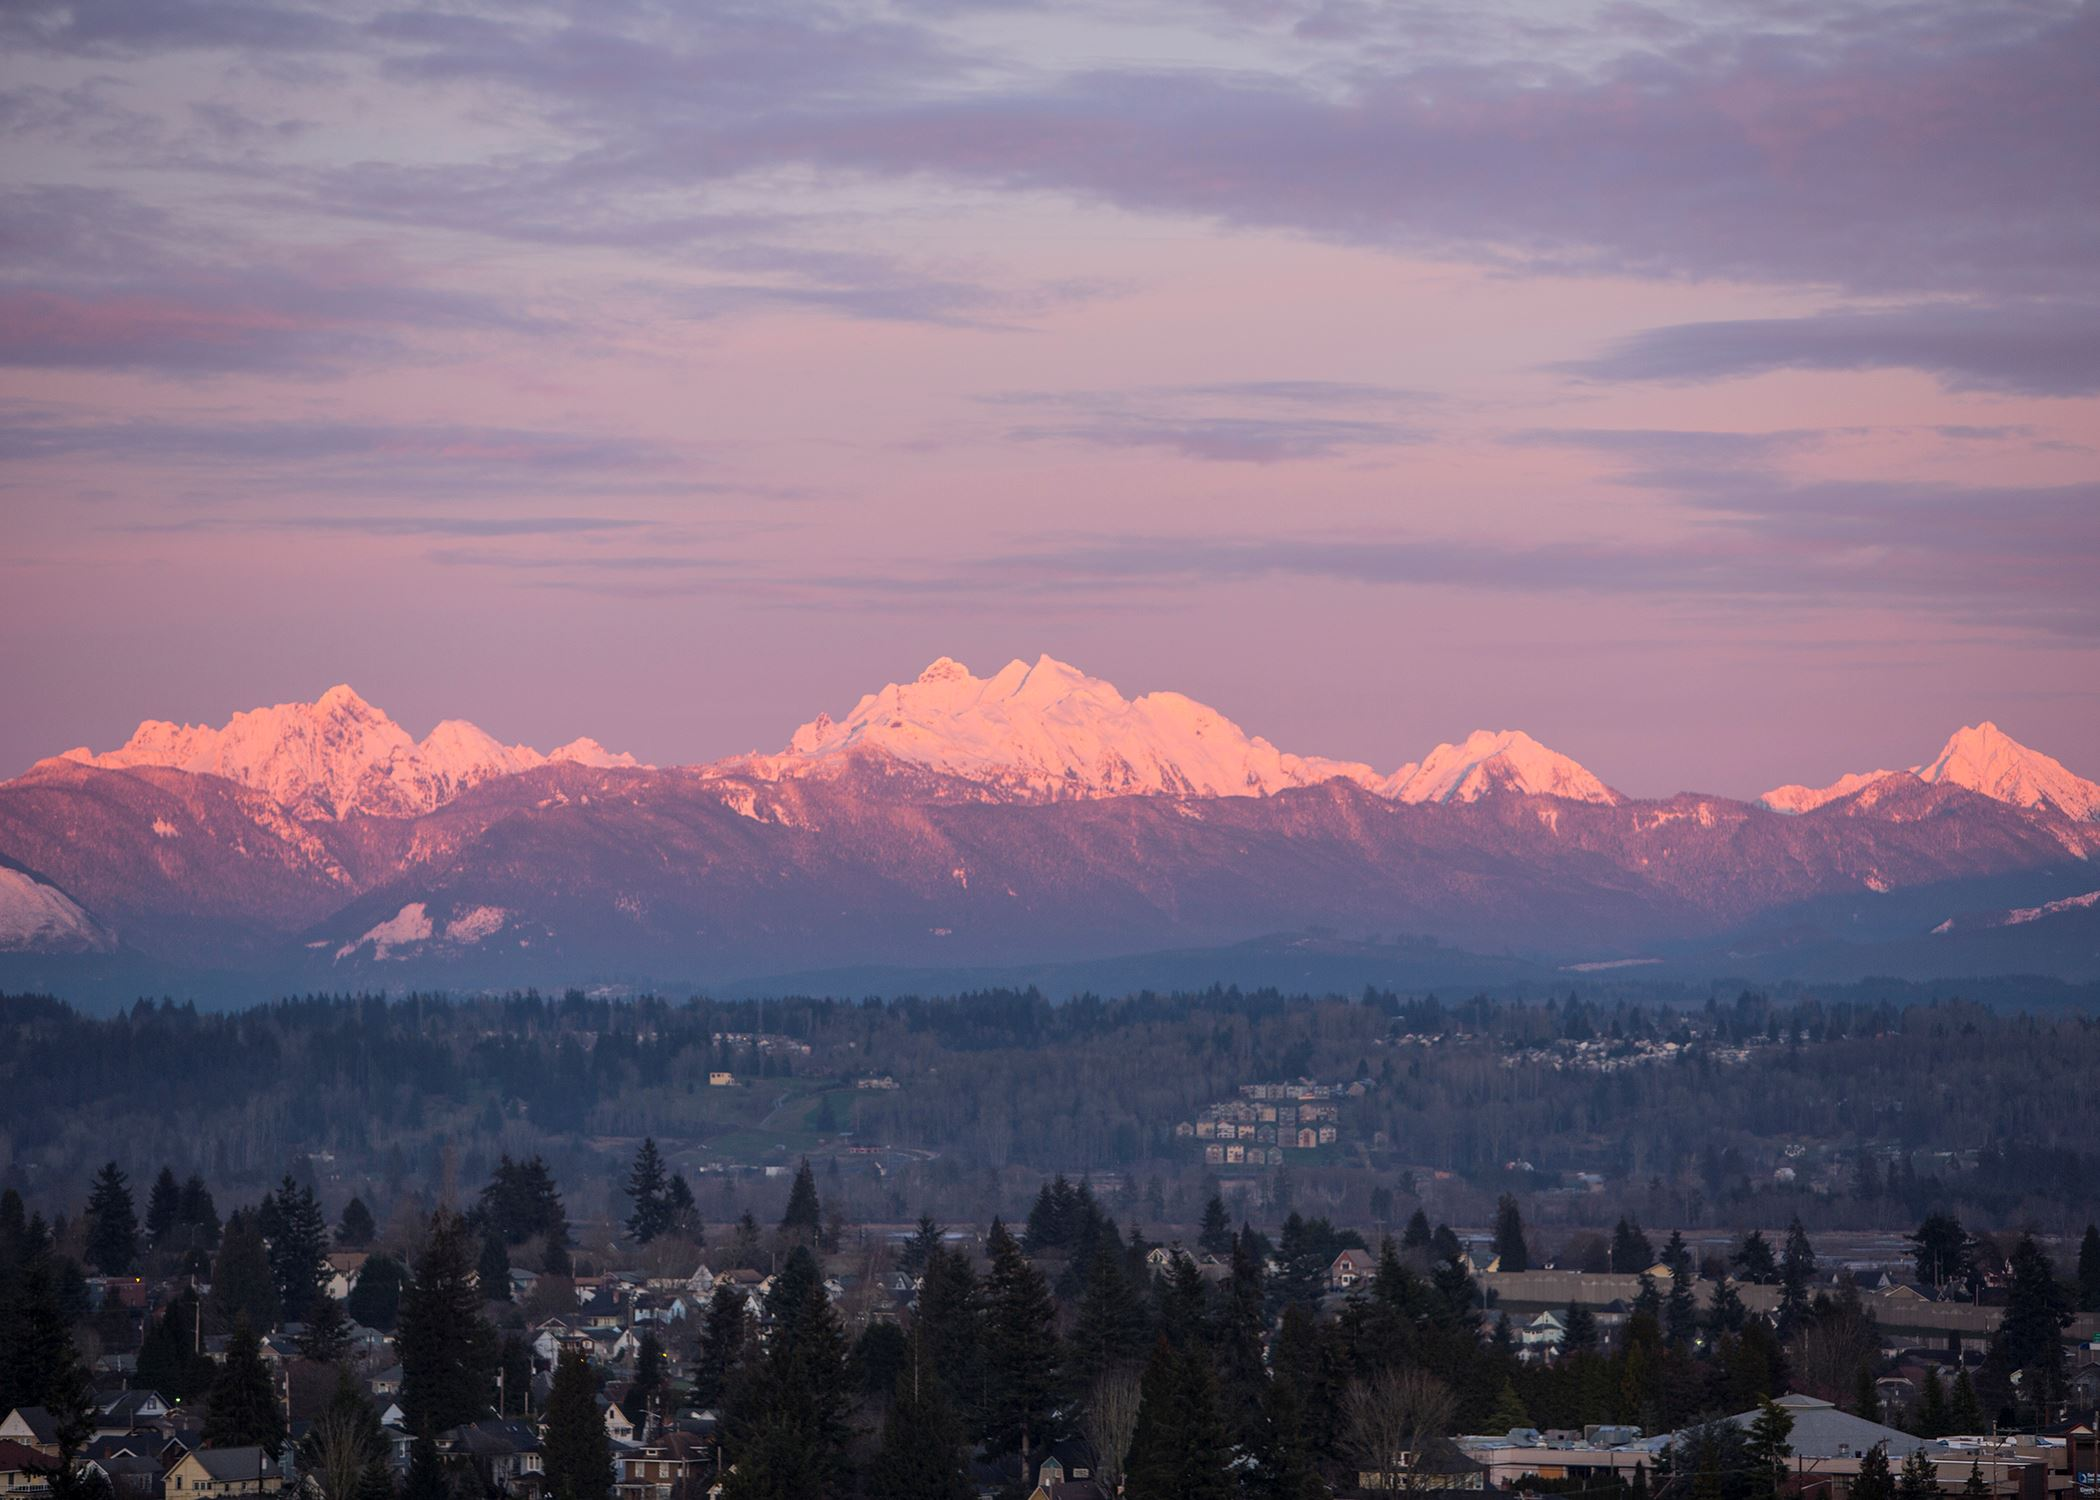 Sunrise over Snohomish County